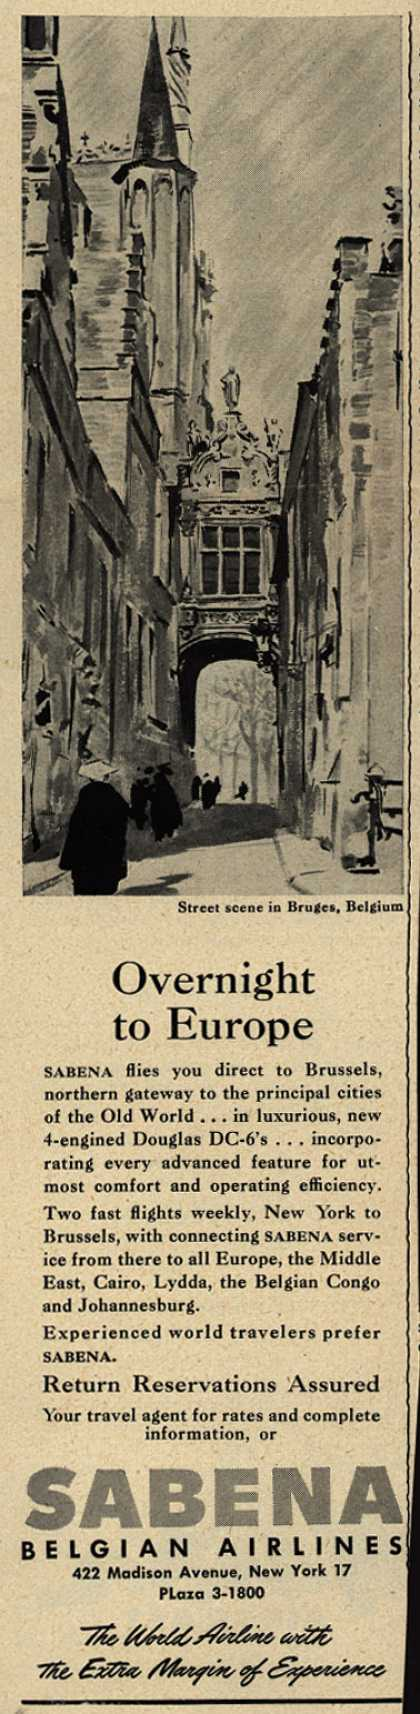 Sabena Belgian Airline's Europe – Overnight to Europe (1948)